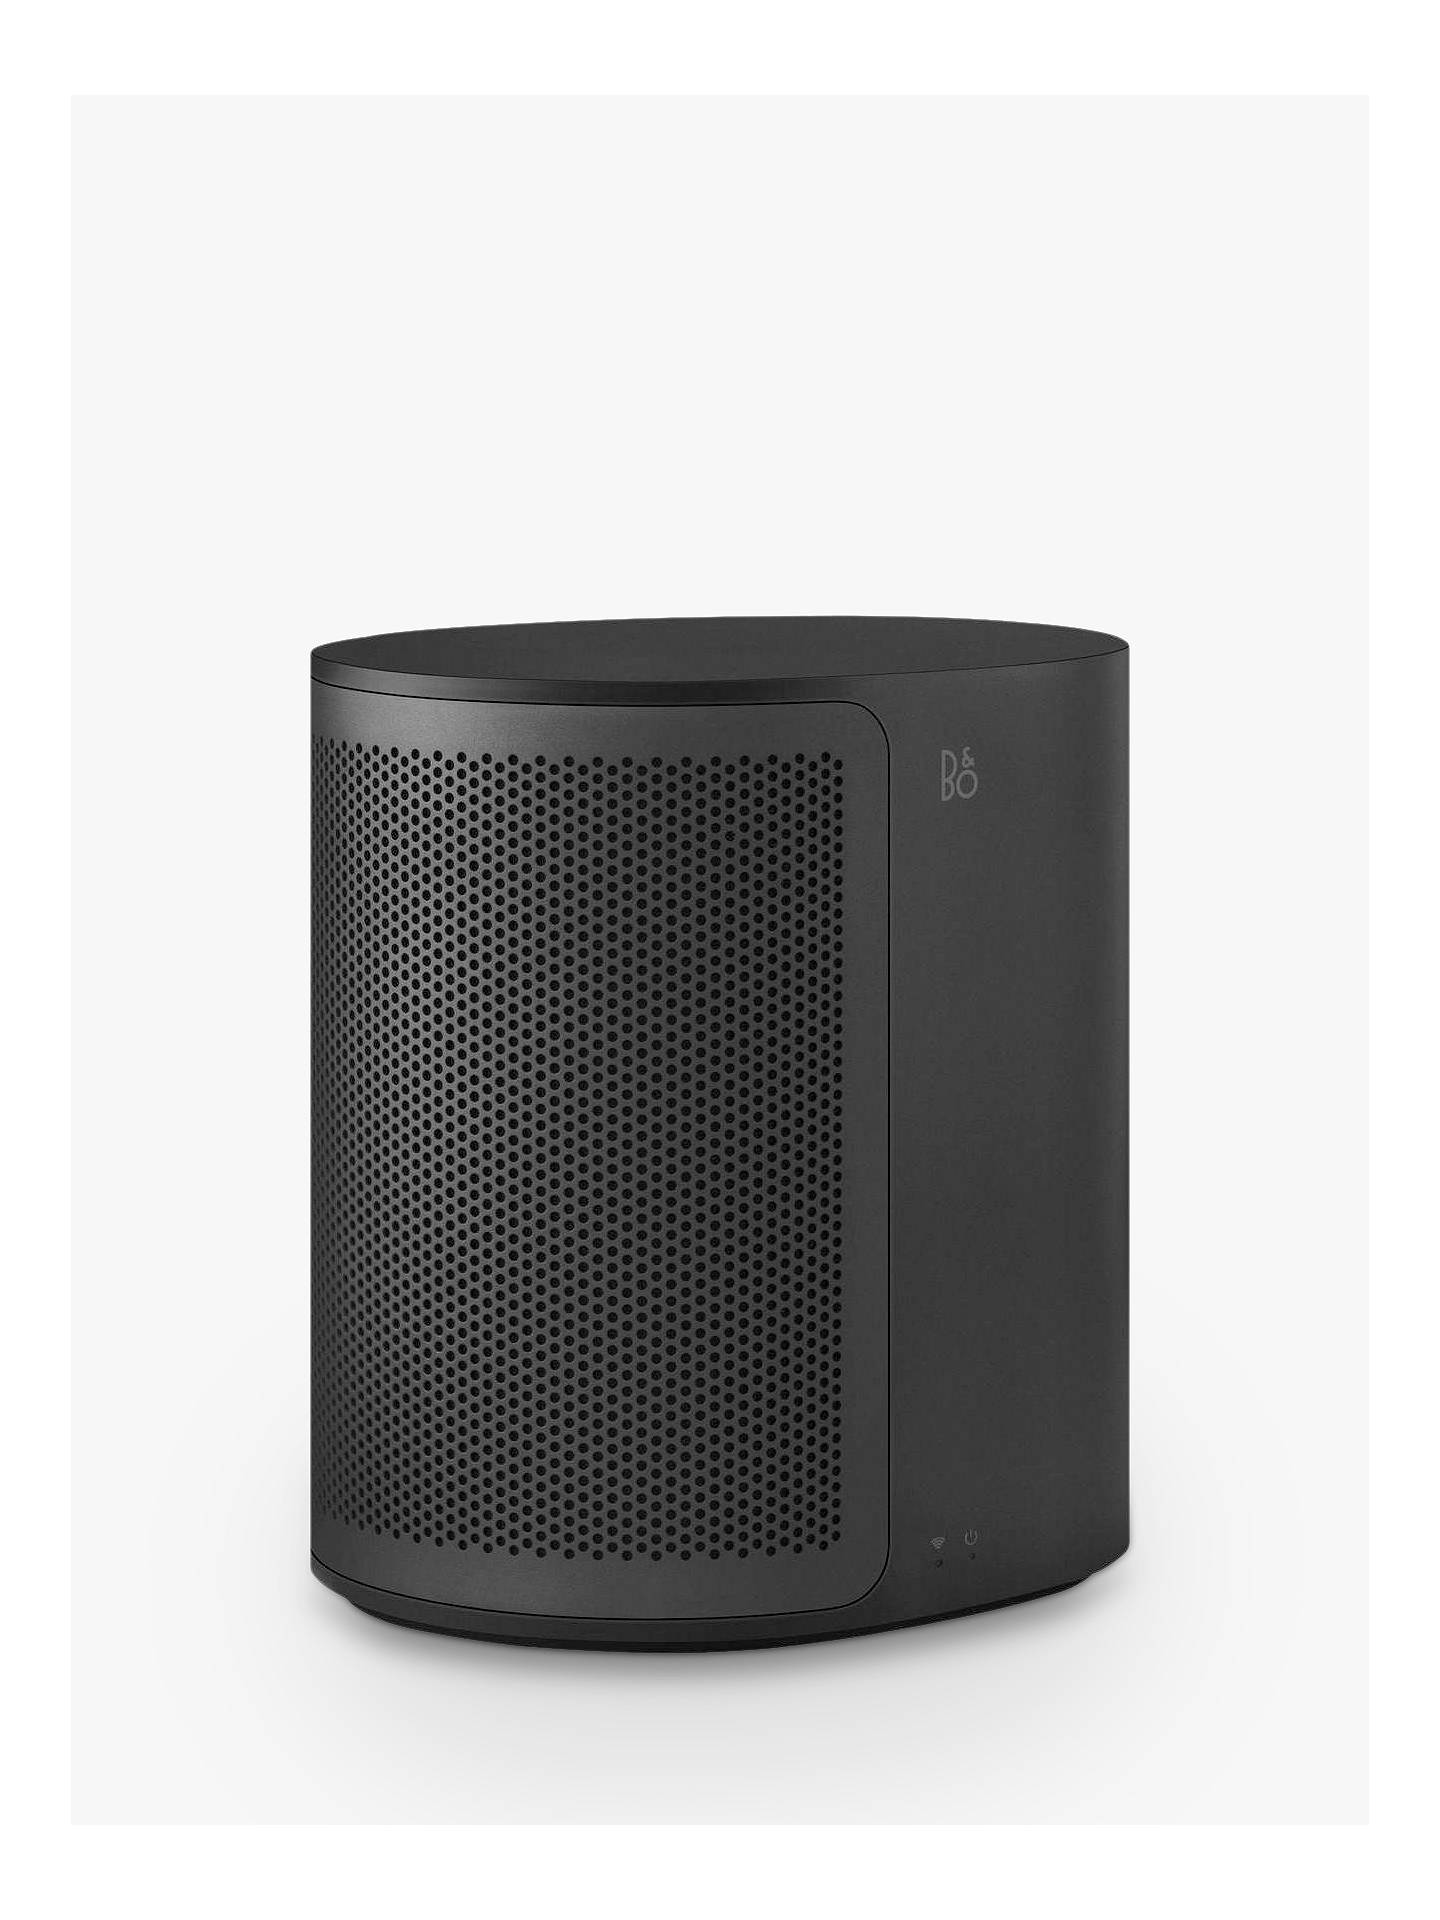 Buy Bang & Olufsen Beoplay M3 Wireless Multiroom & Bluetooth Speaker with Google Chromecast & Apple AirPlay, Black Online at johnlewis.com